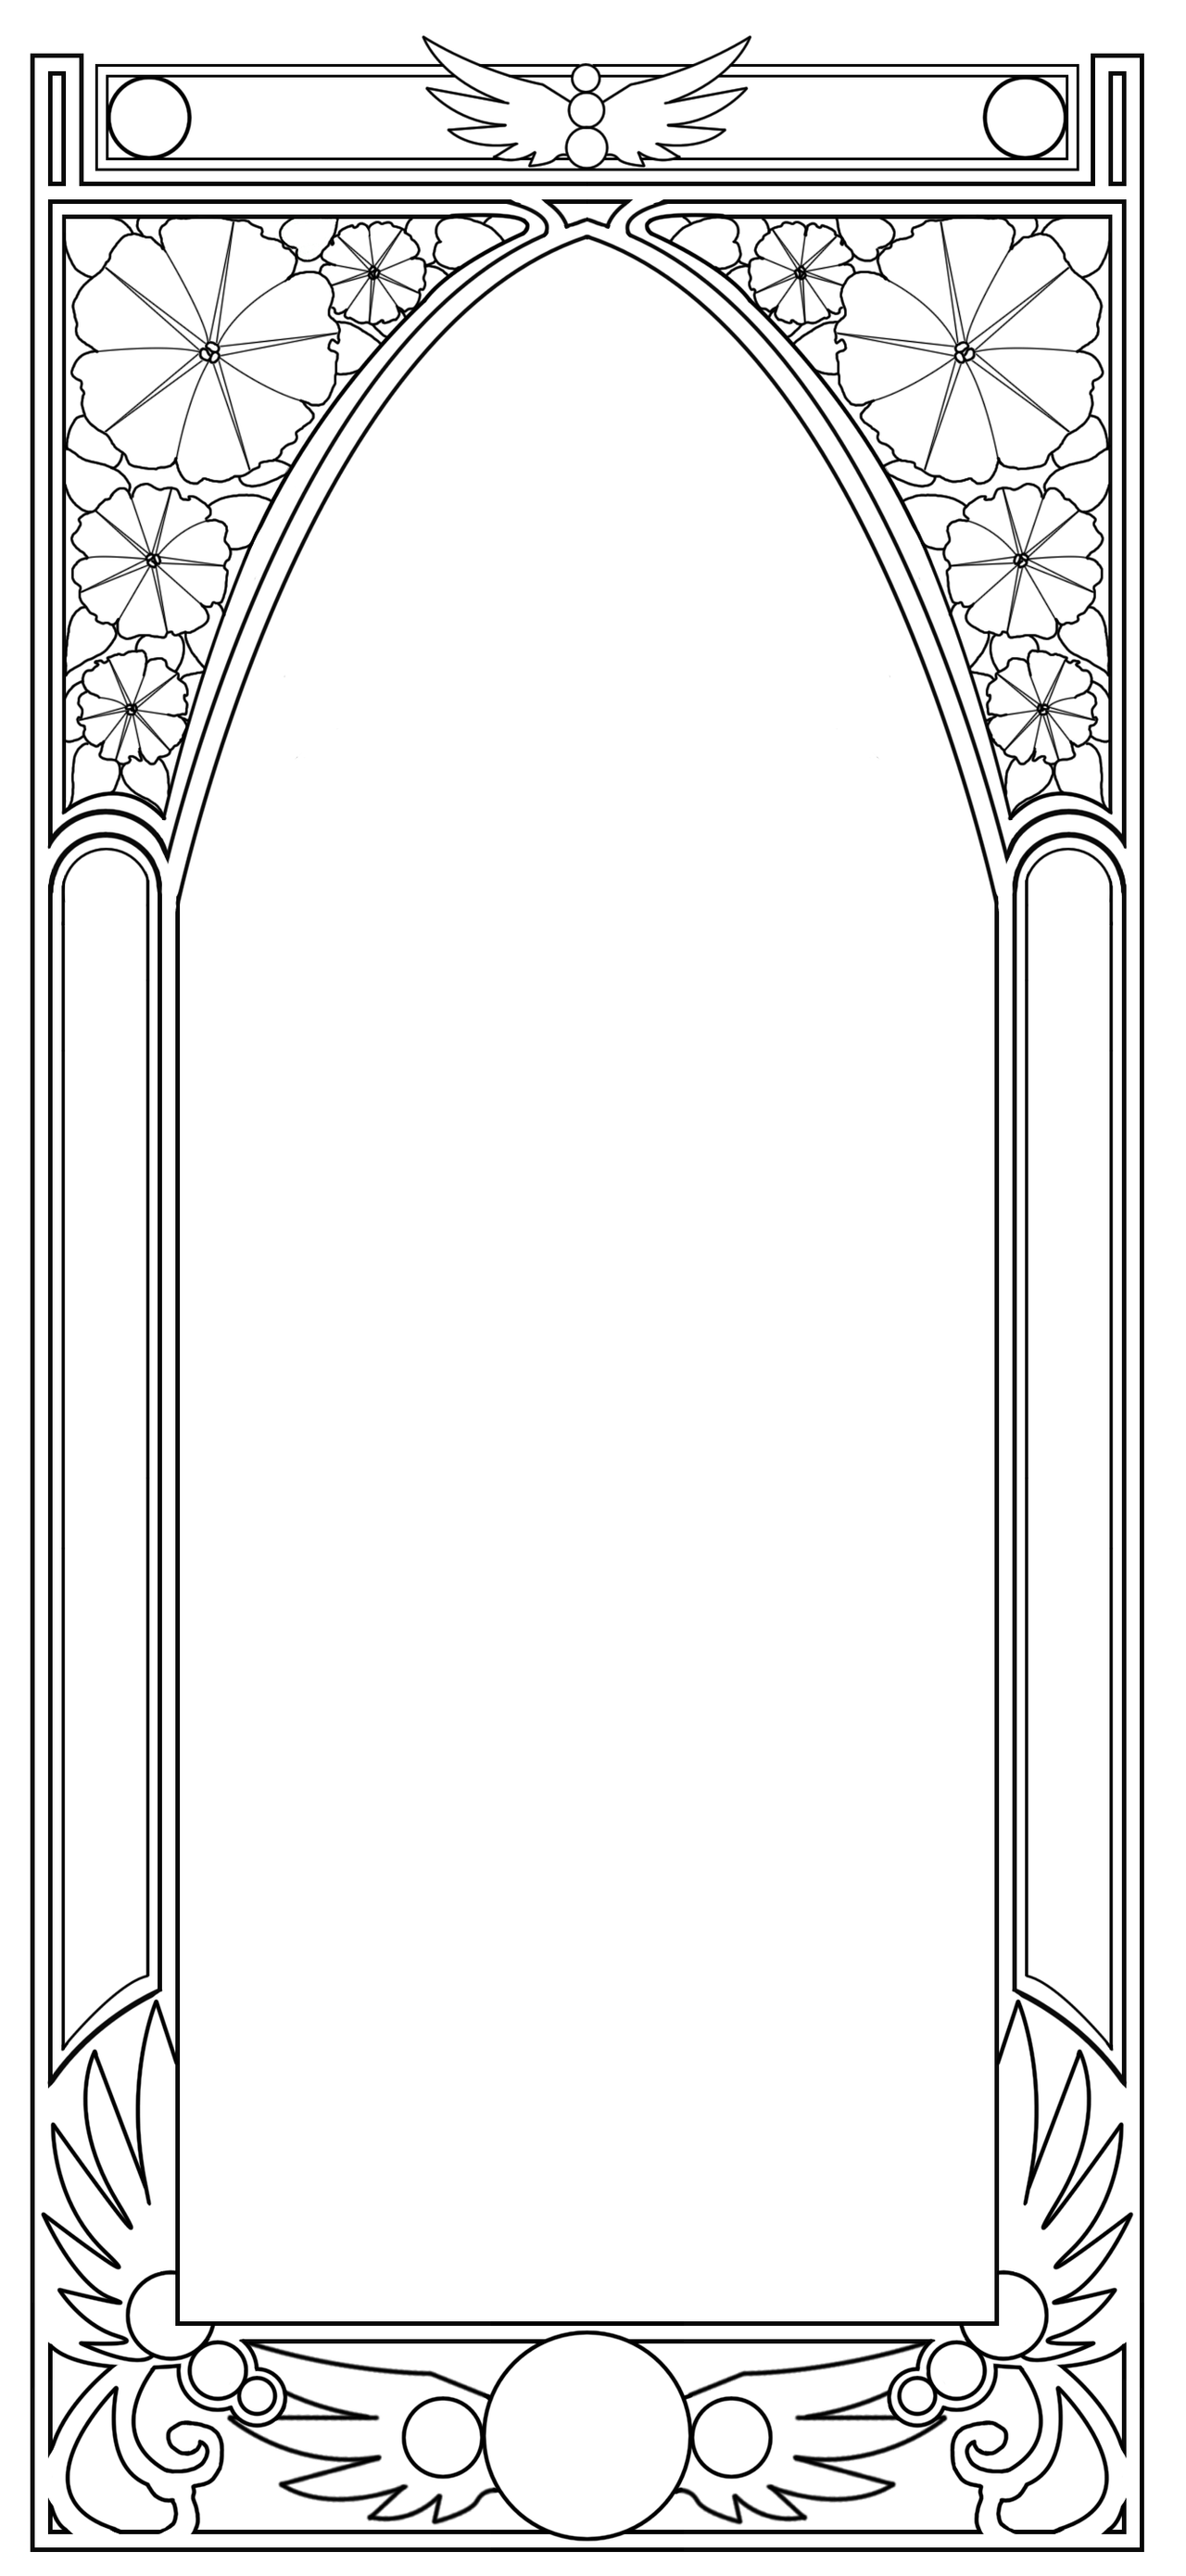 Free Art Nouveau Border By BiSnarkian On DeviantArt